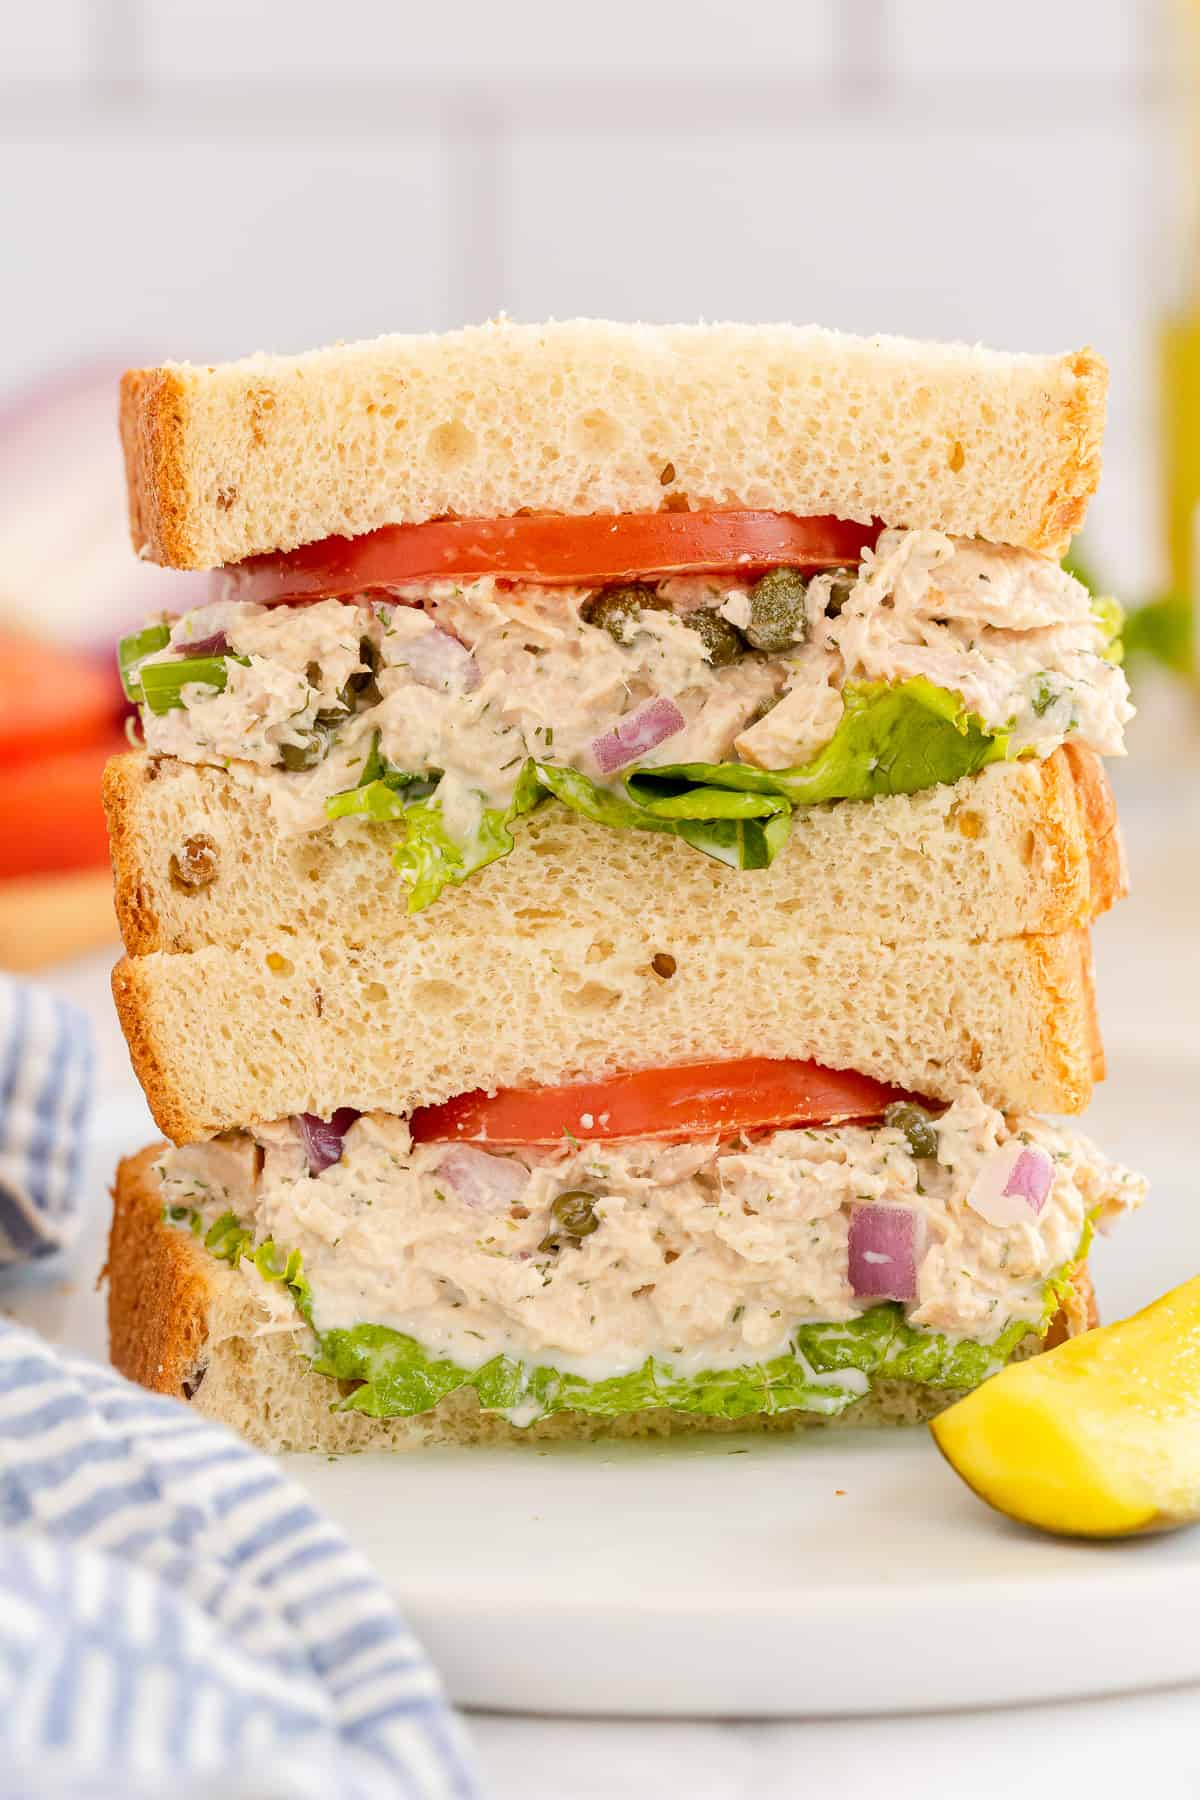 A tuna sandwich with tomatoes and lettuce cut in half and stacked on a plate.